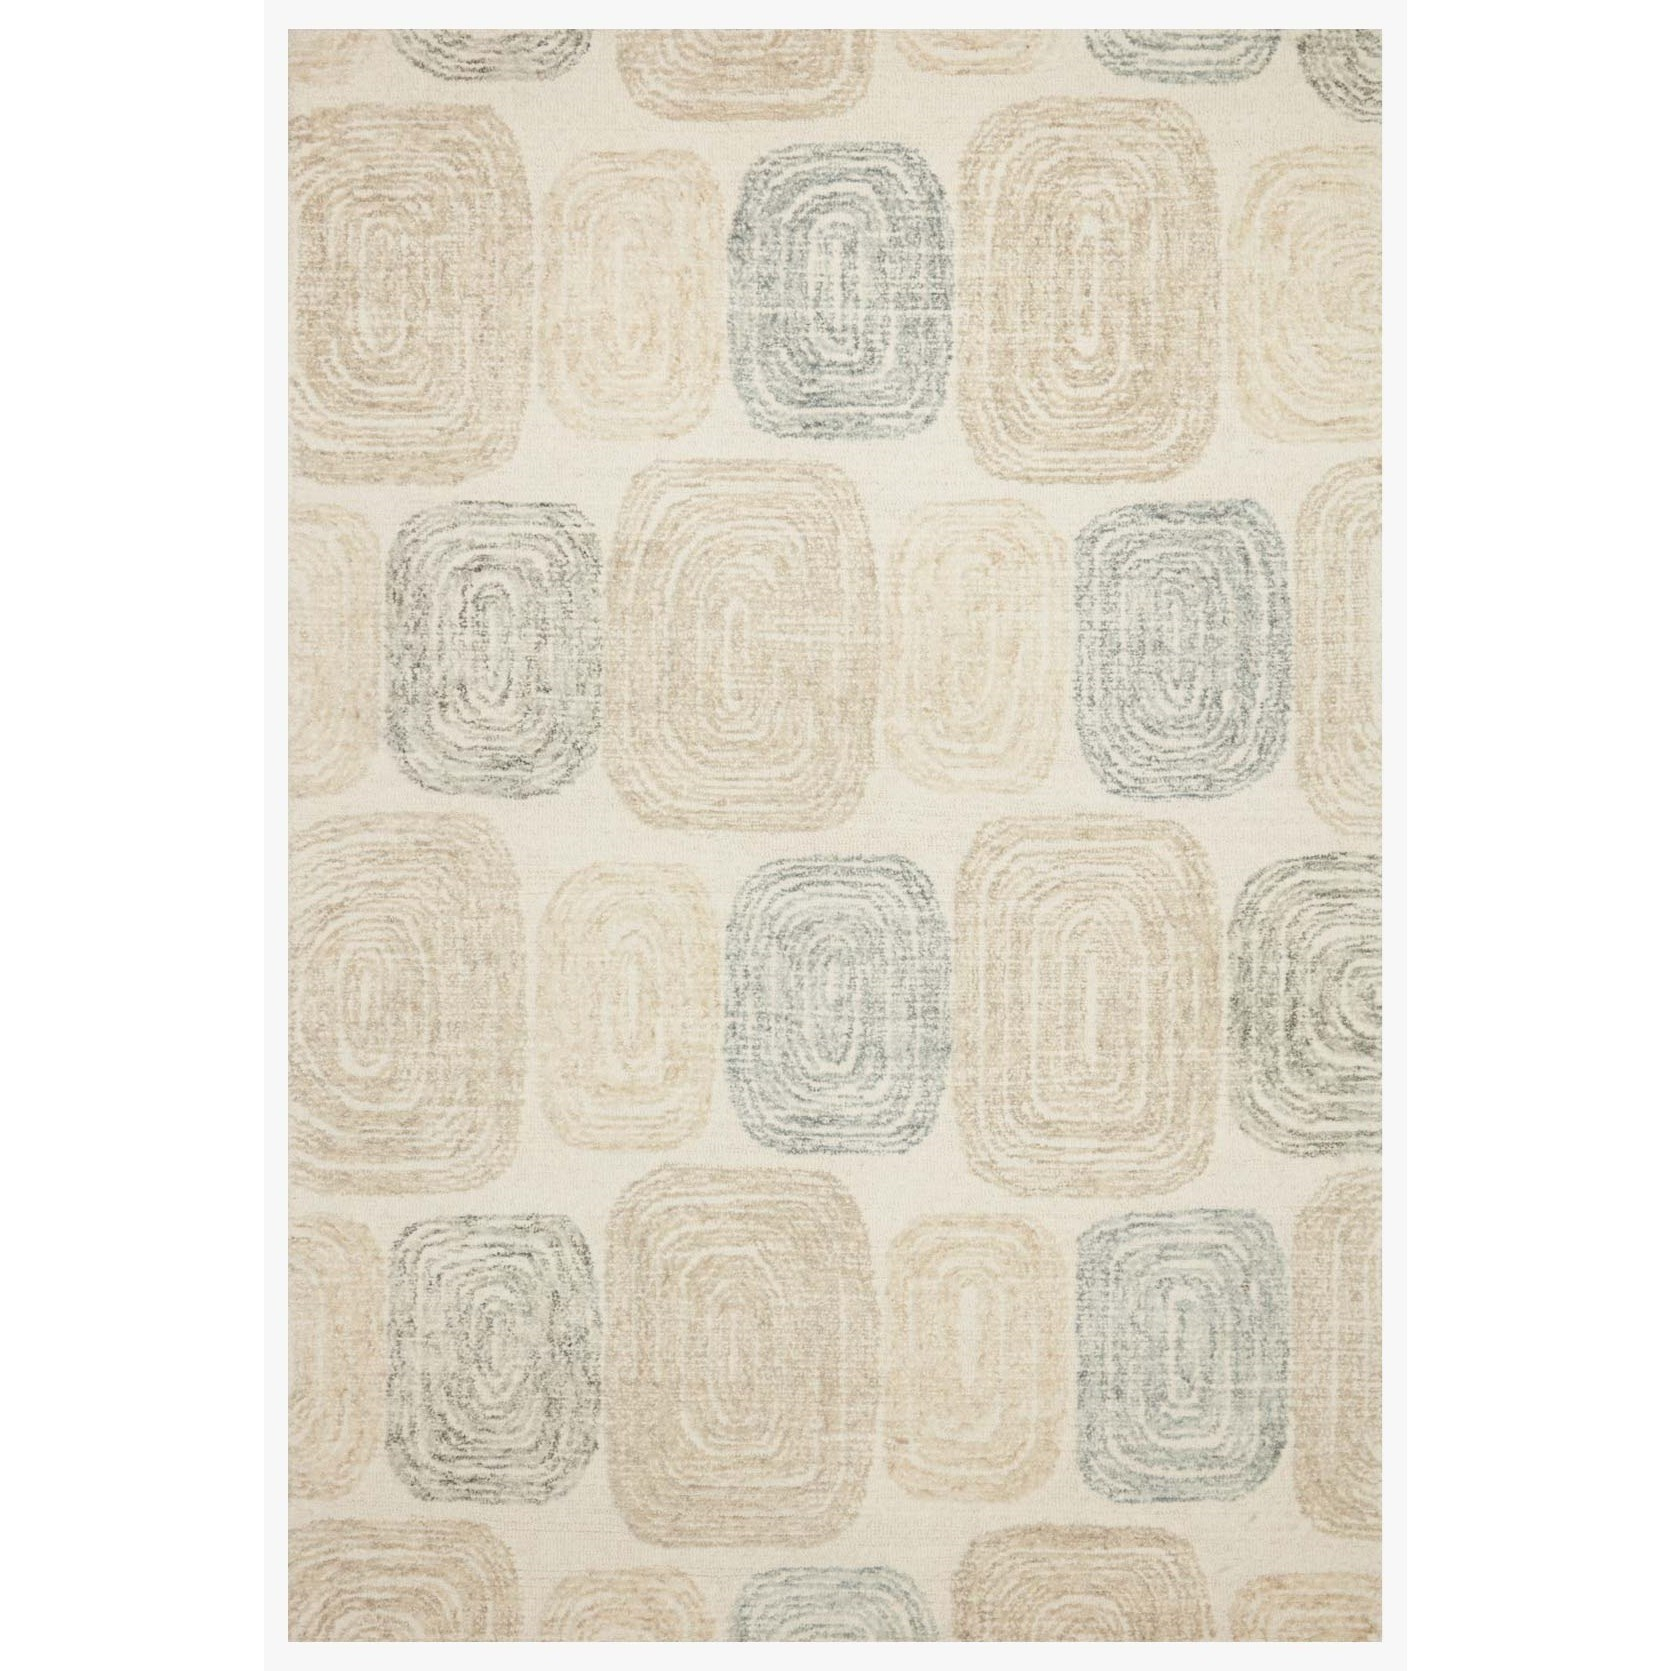 """Milo 9'3"""" x 13' Teal / Neutral Rug by Loloi Rugs at Virginia Furniture Market"""